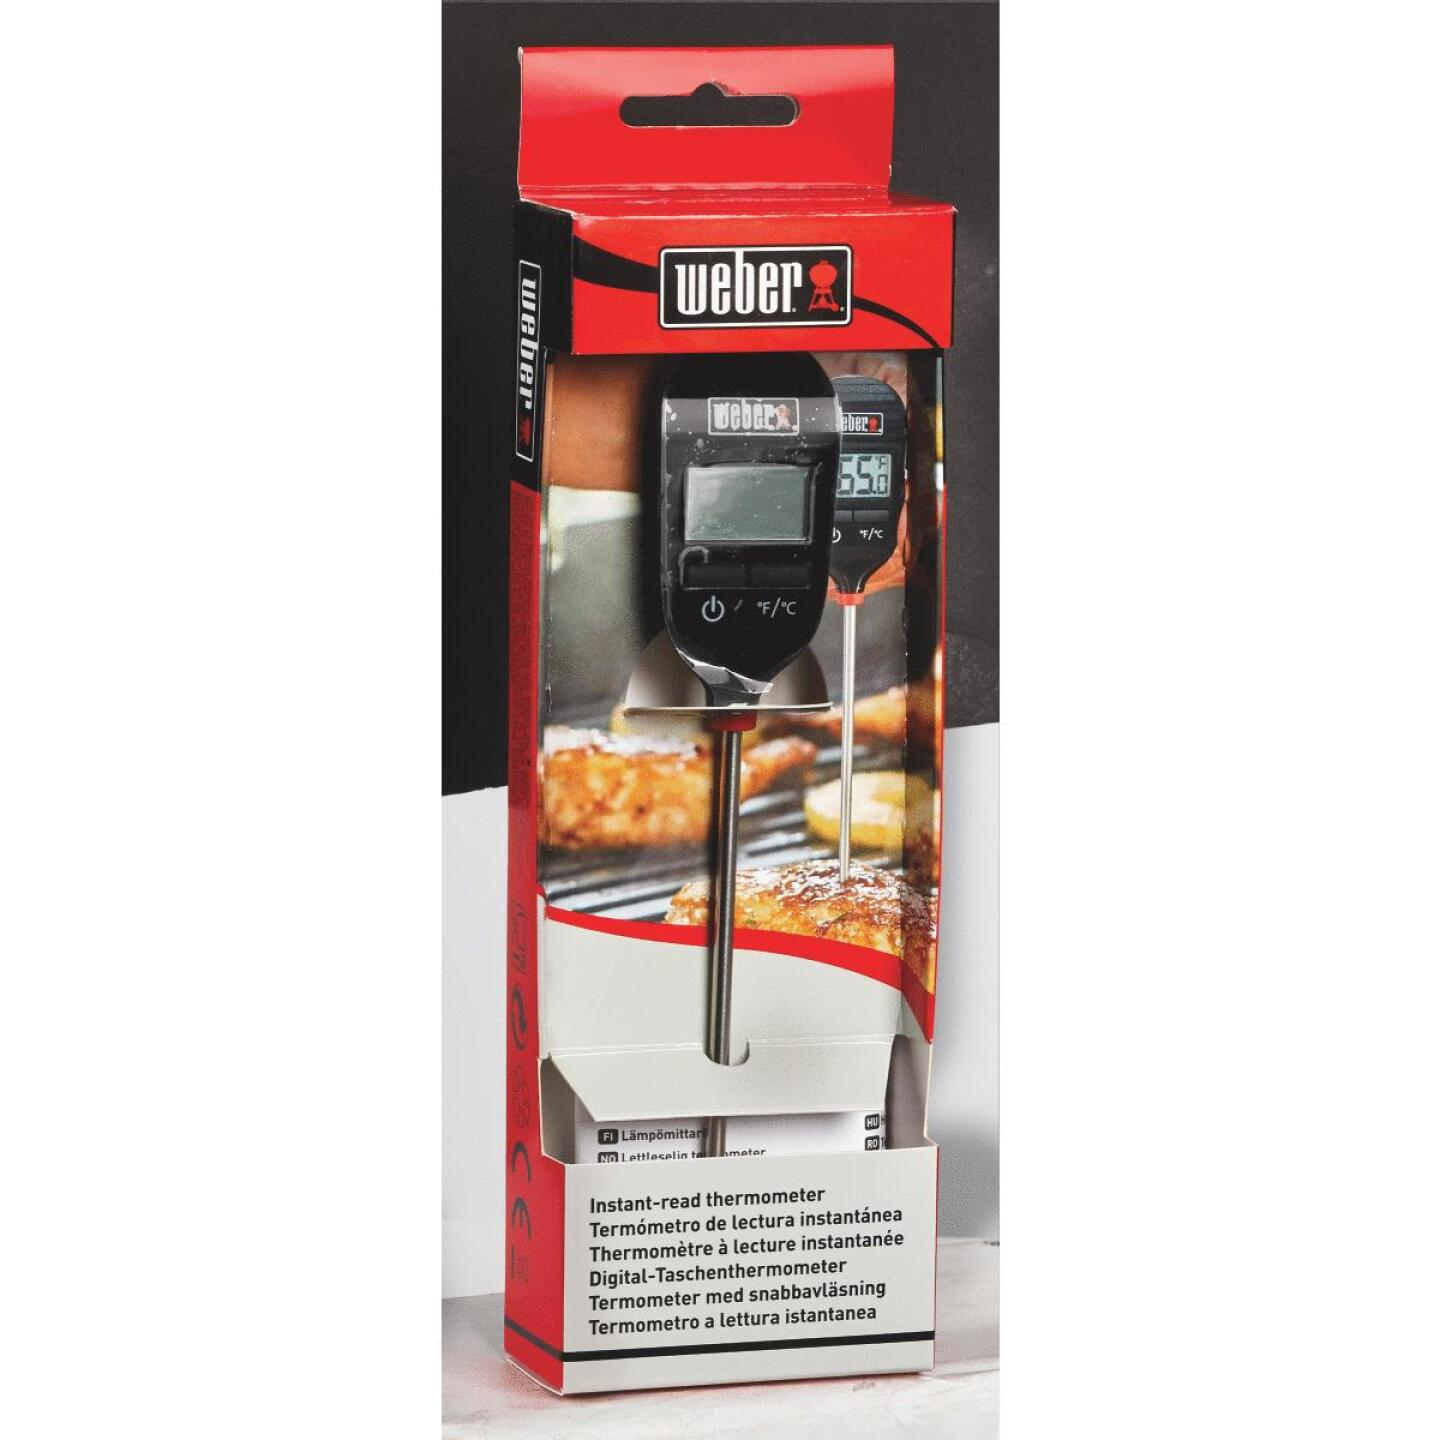 Weber Instant Read Digital 8 In. Thermometer Image 3